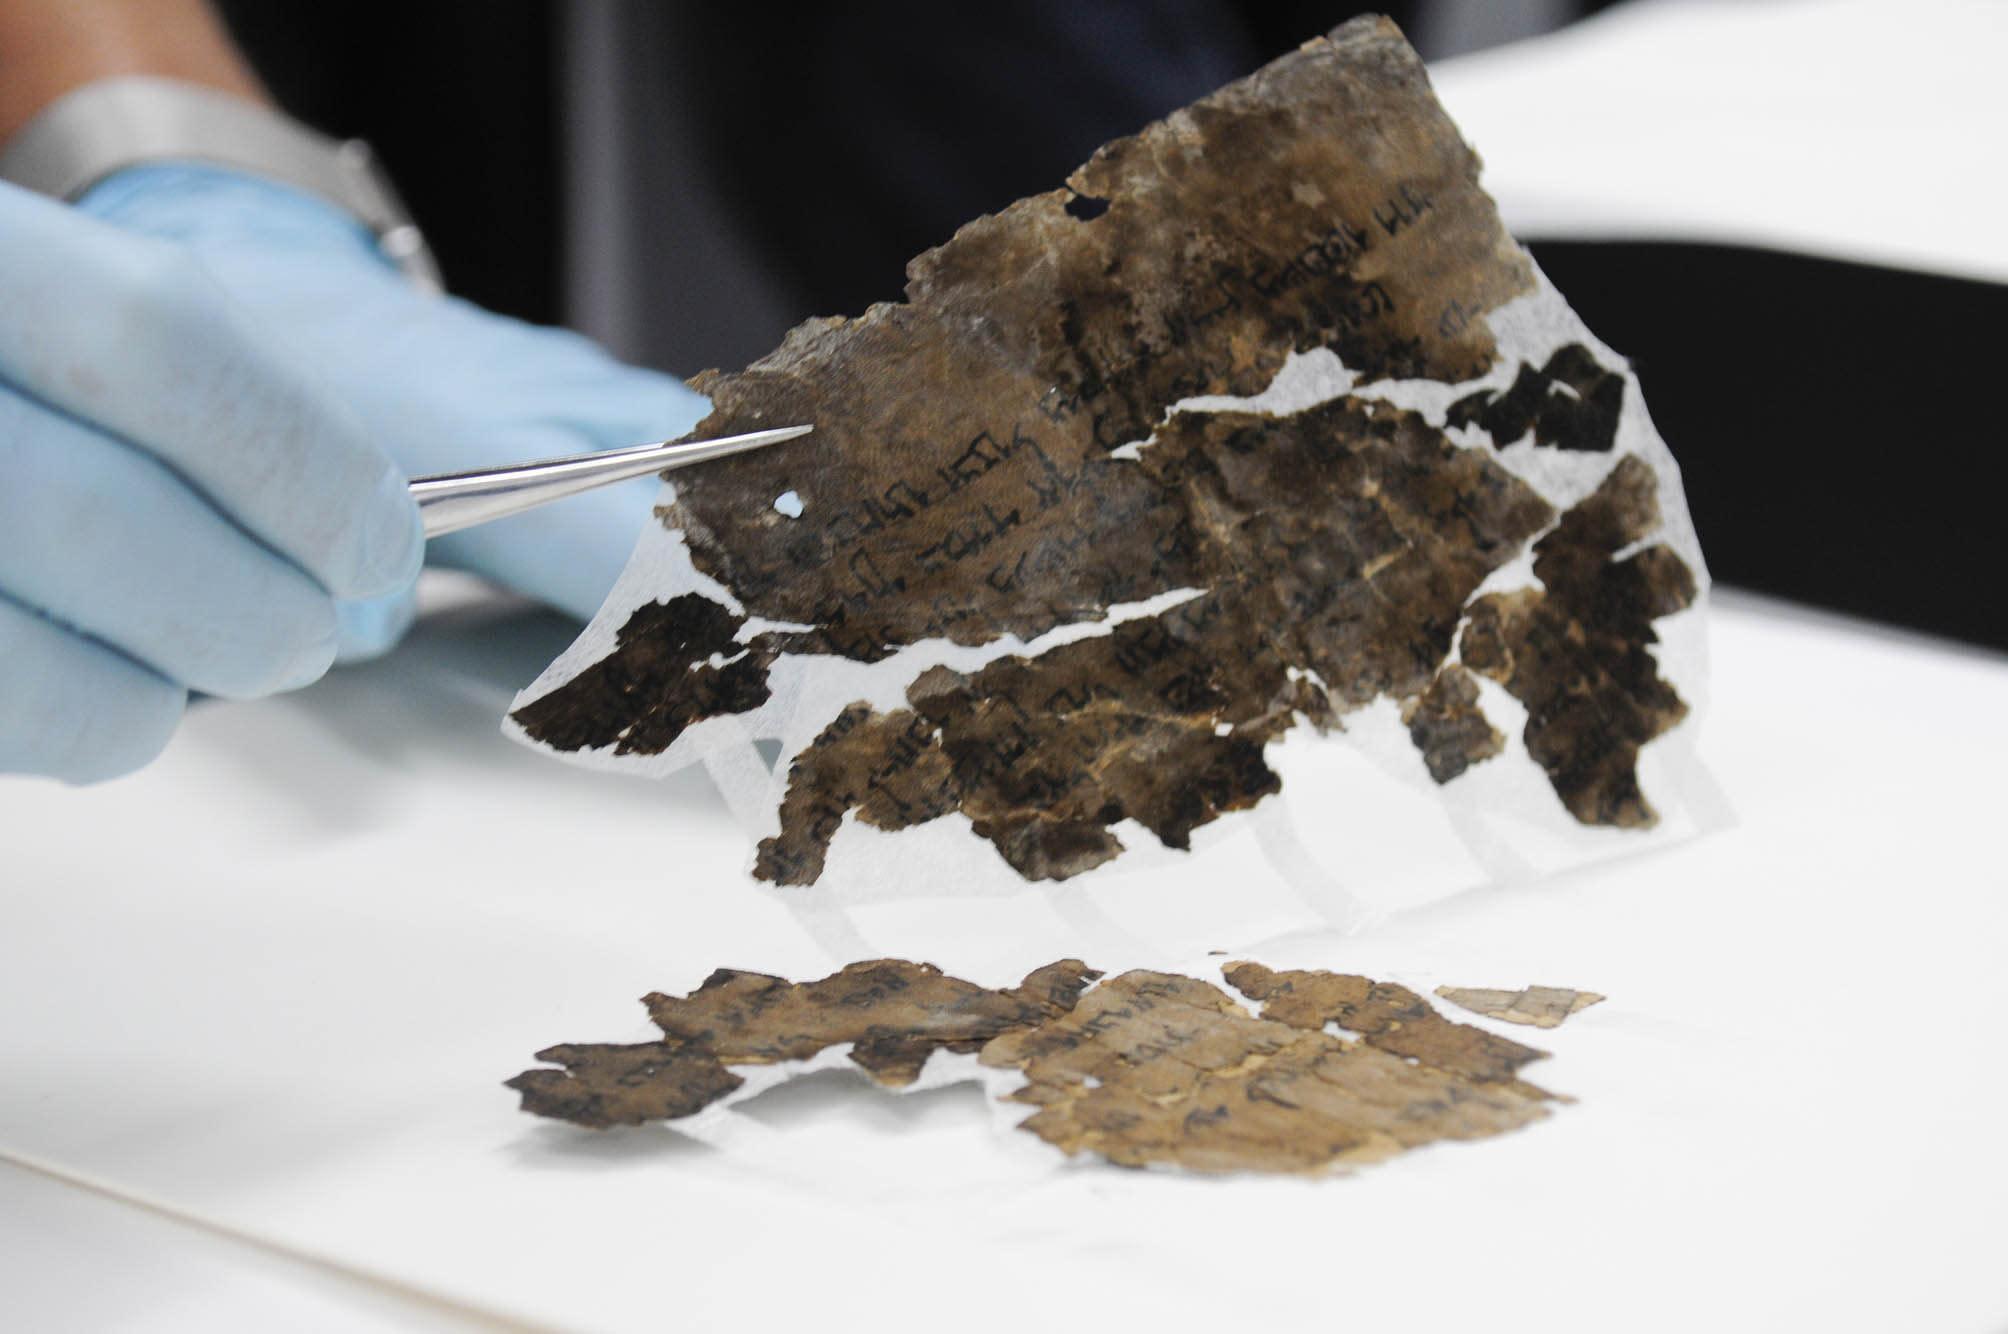 Conserving the Dead Sea Scrolls at the Israel Antiquities Authority laboratories in Jerusalem. (photo credit: SHAI HALEVI / ISRAEL ANTIQUITIES AUTHORITY)